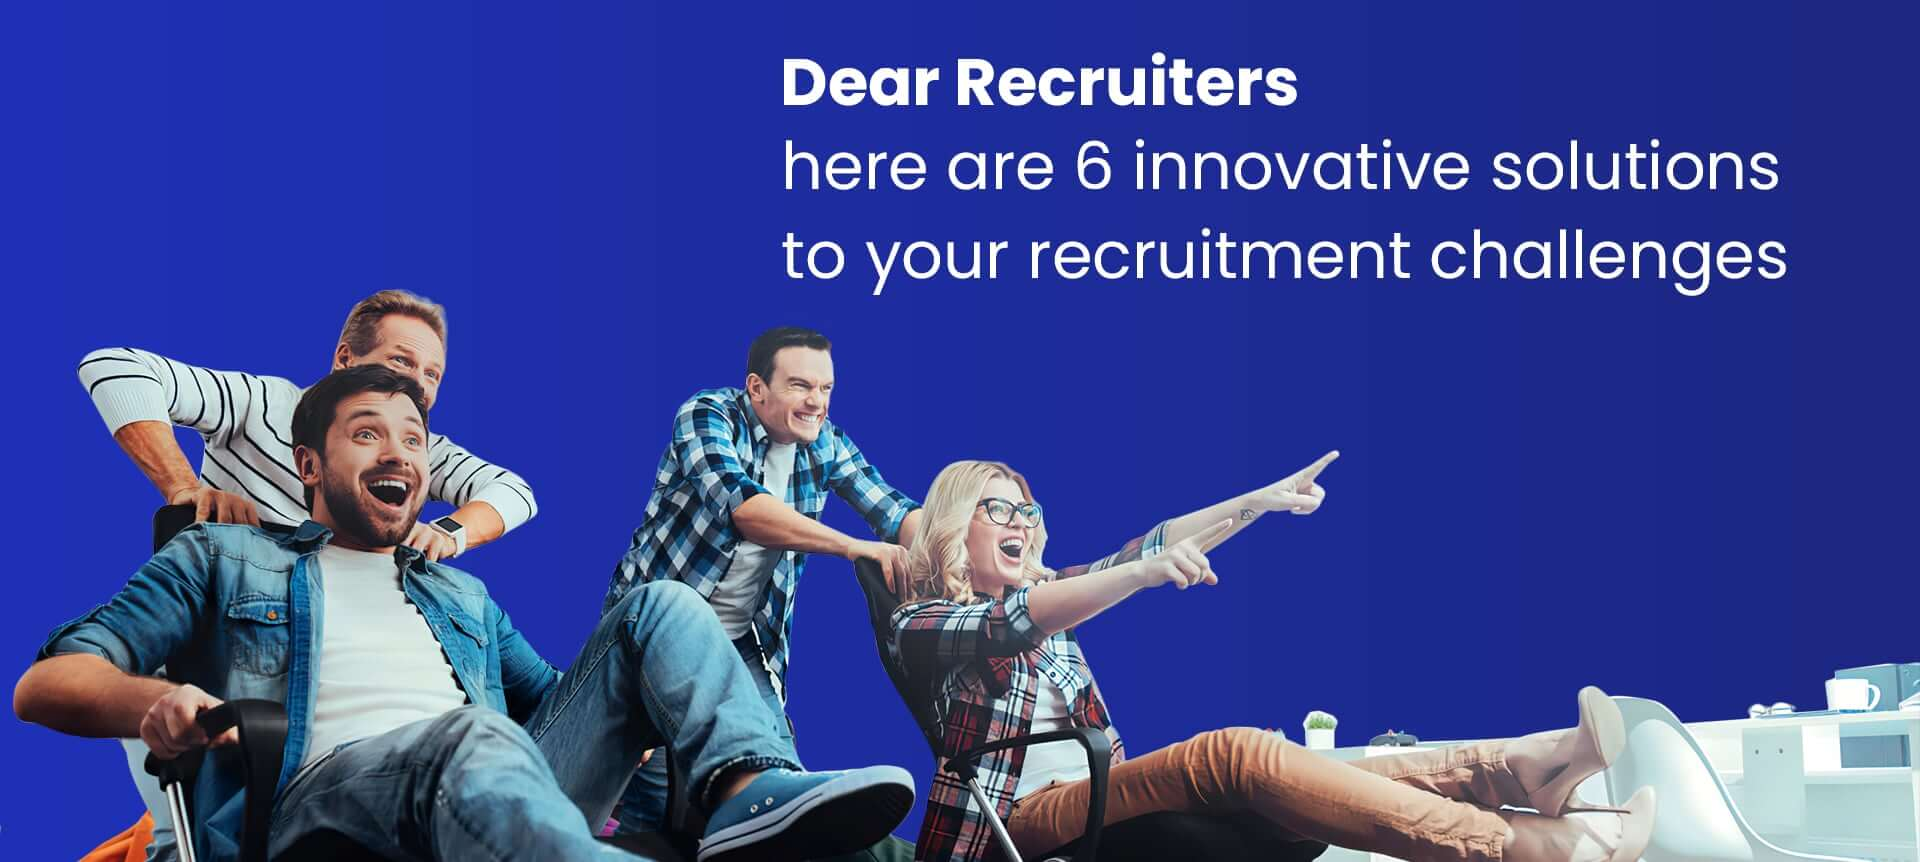 recruiters finding solutions to their remote recruitment challenges